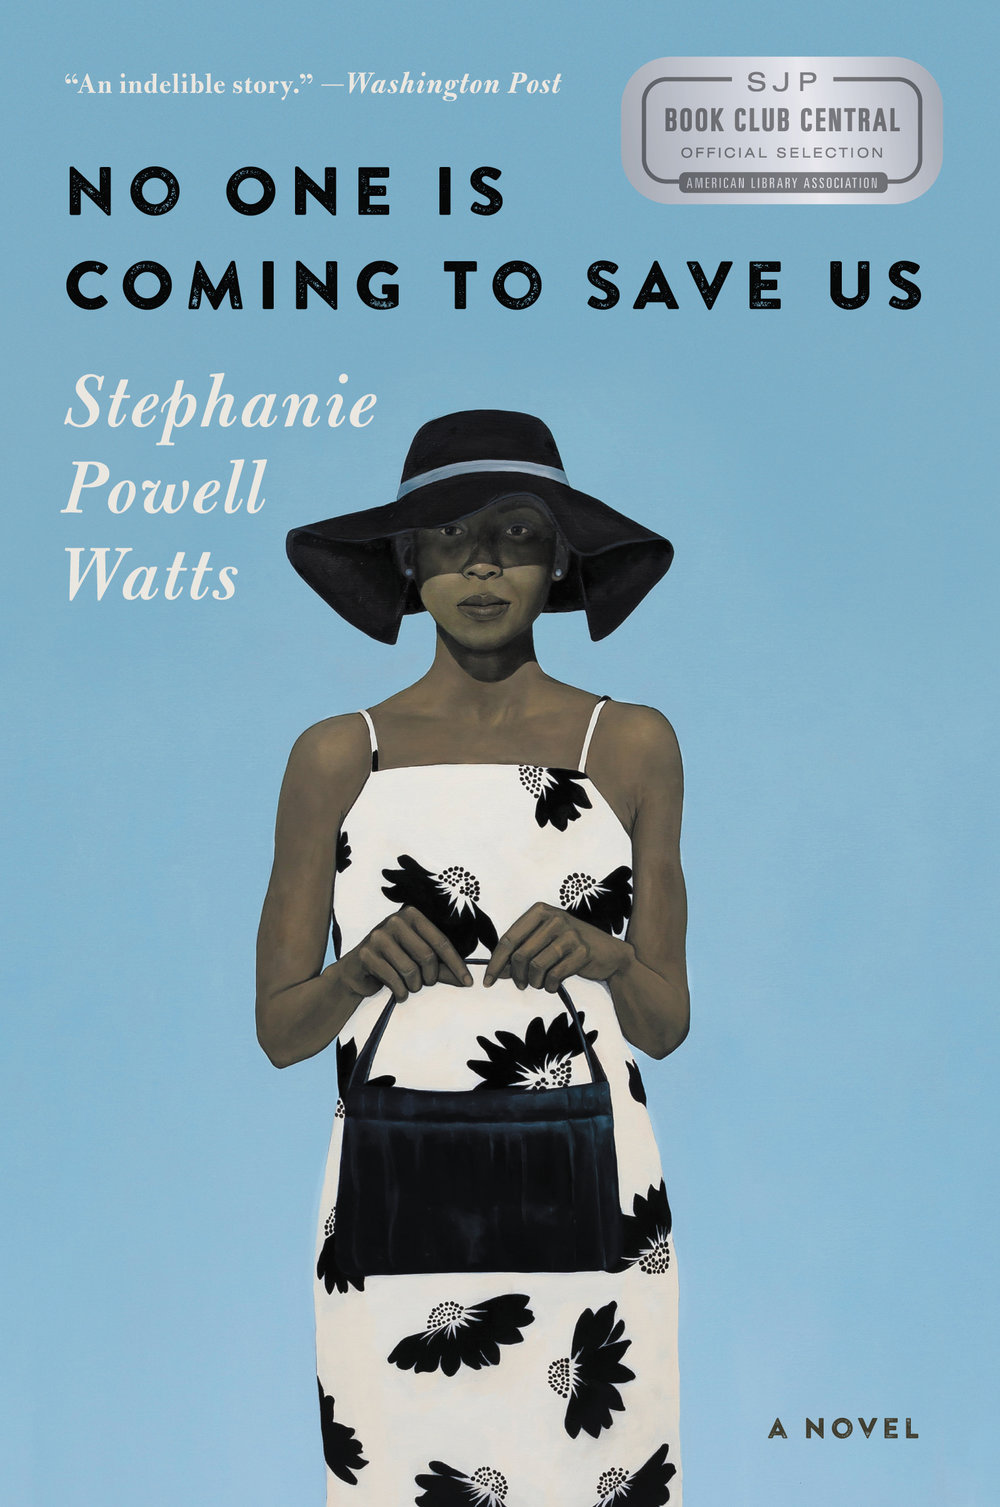 BSG #13: DNF Something / No One Is Coming to Save Us - Join the #BookSquad in Pinewood, North Carolina for a not-so-Gatsby retelling of The Great Gatsby in No One Is Coming to Save Us by Stephanie Powell Watts. The squad discusses characterization, pregnancy and motherhood, and the role of memory and the past in this novel. Find out which Squad members liked the book and which ones felt... differently. Plus, we dig into some great listener feedback on our American War and Annihilation episodes! Emily tells us about this month's featured bookstore, Little Shop of Stories in Decatur, GA, and we tell you what's on the #BookSquadBlog and what we're discussing in our next othersode in two weeks. Rate, review, subscribe, and listen!